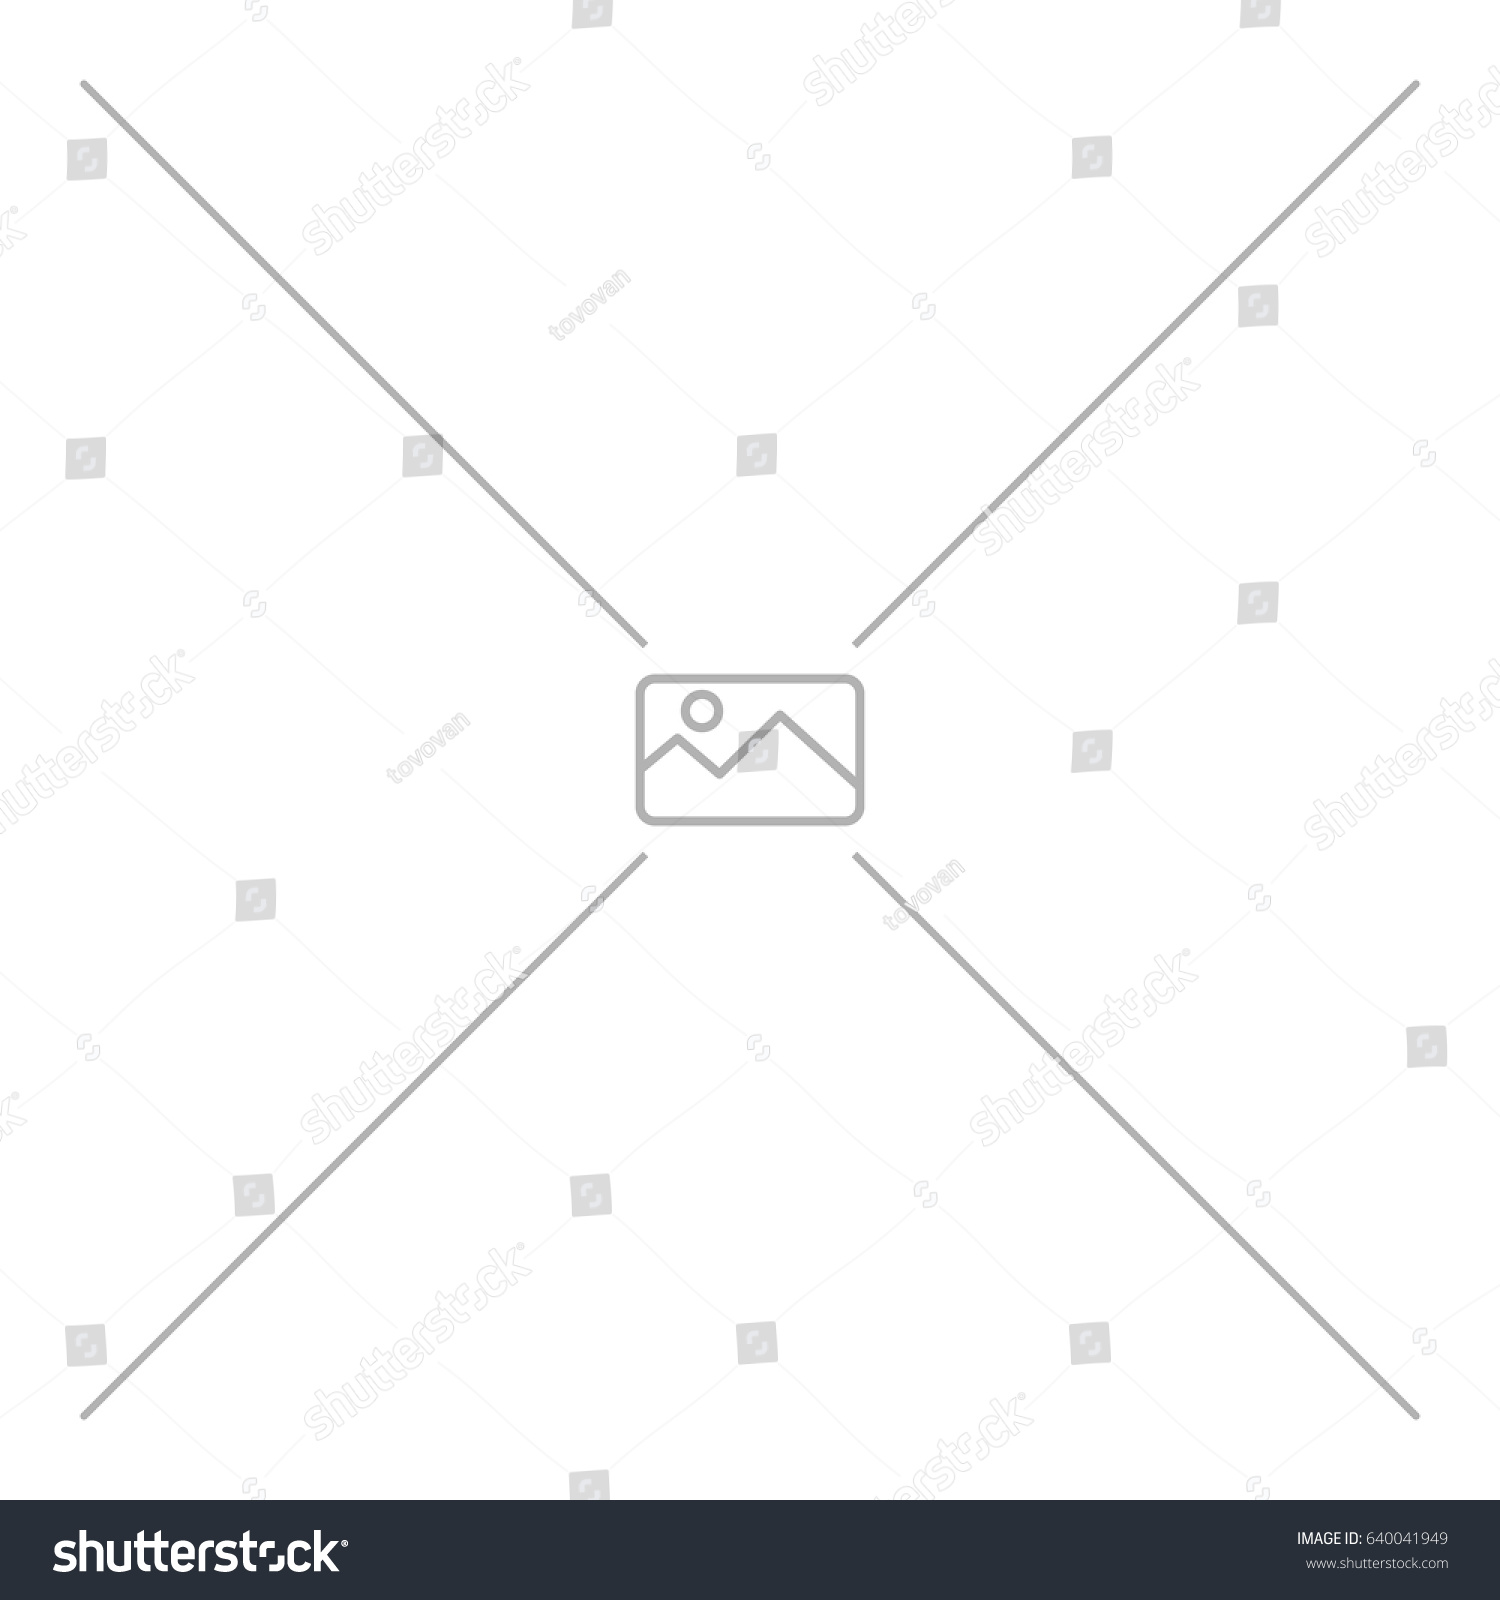 Shutterstock Watermark Png (97+ Images I #624097 - PNG